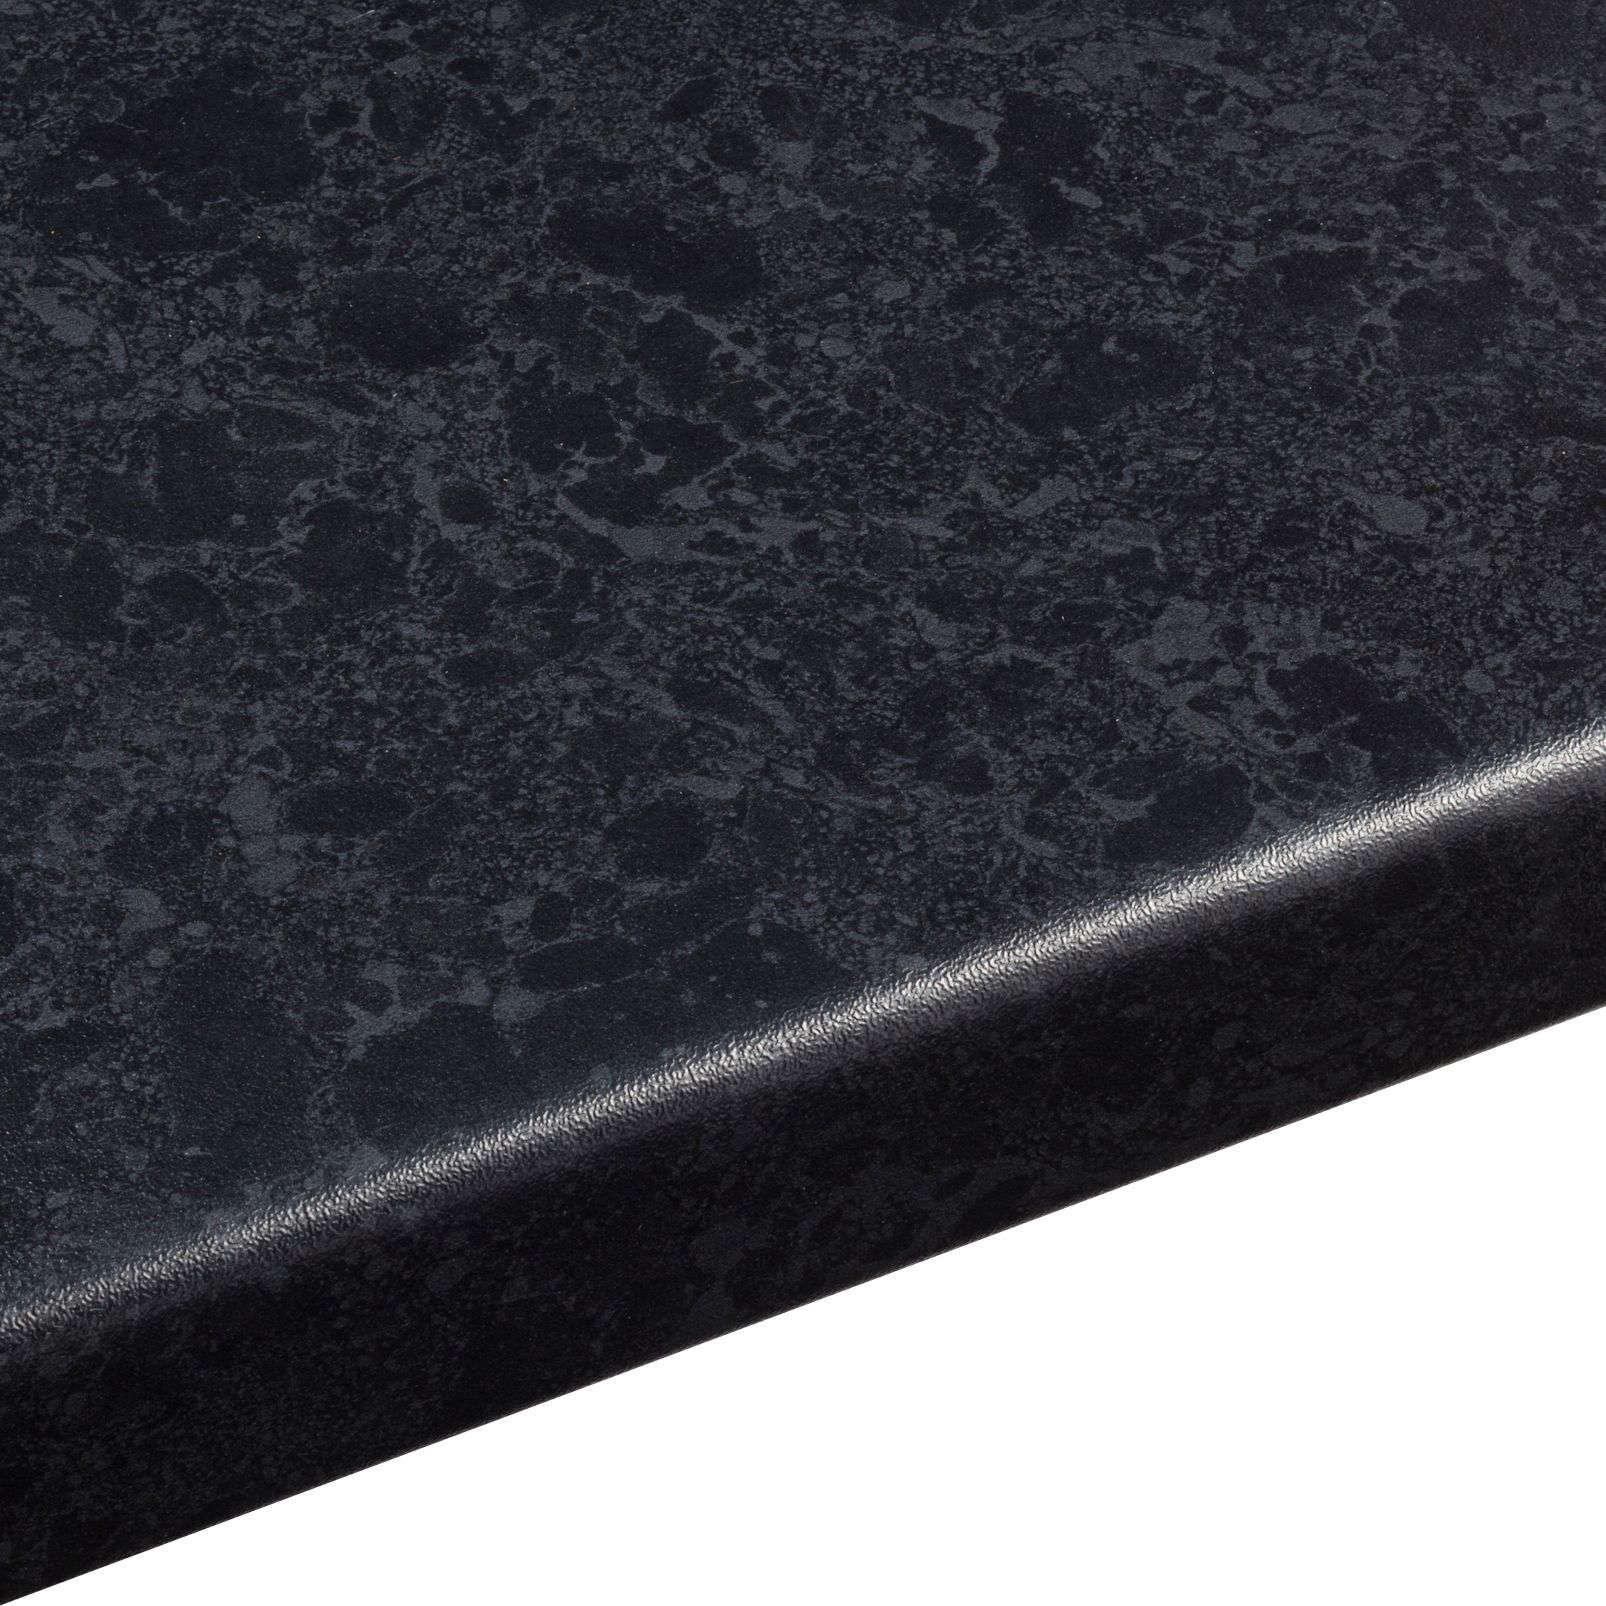 38mm b u0026q midnight granite satin round edge kitchen worktop l 3m